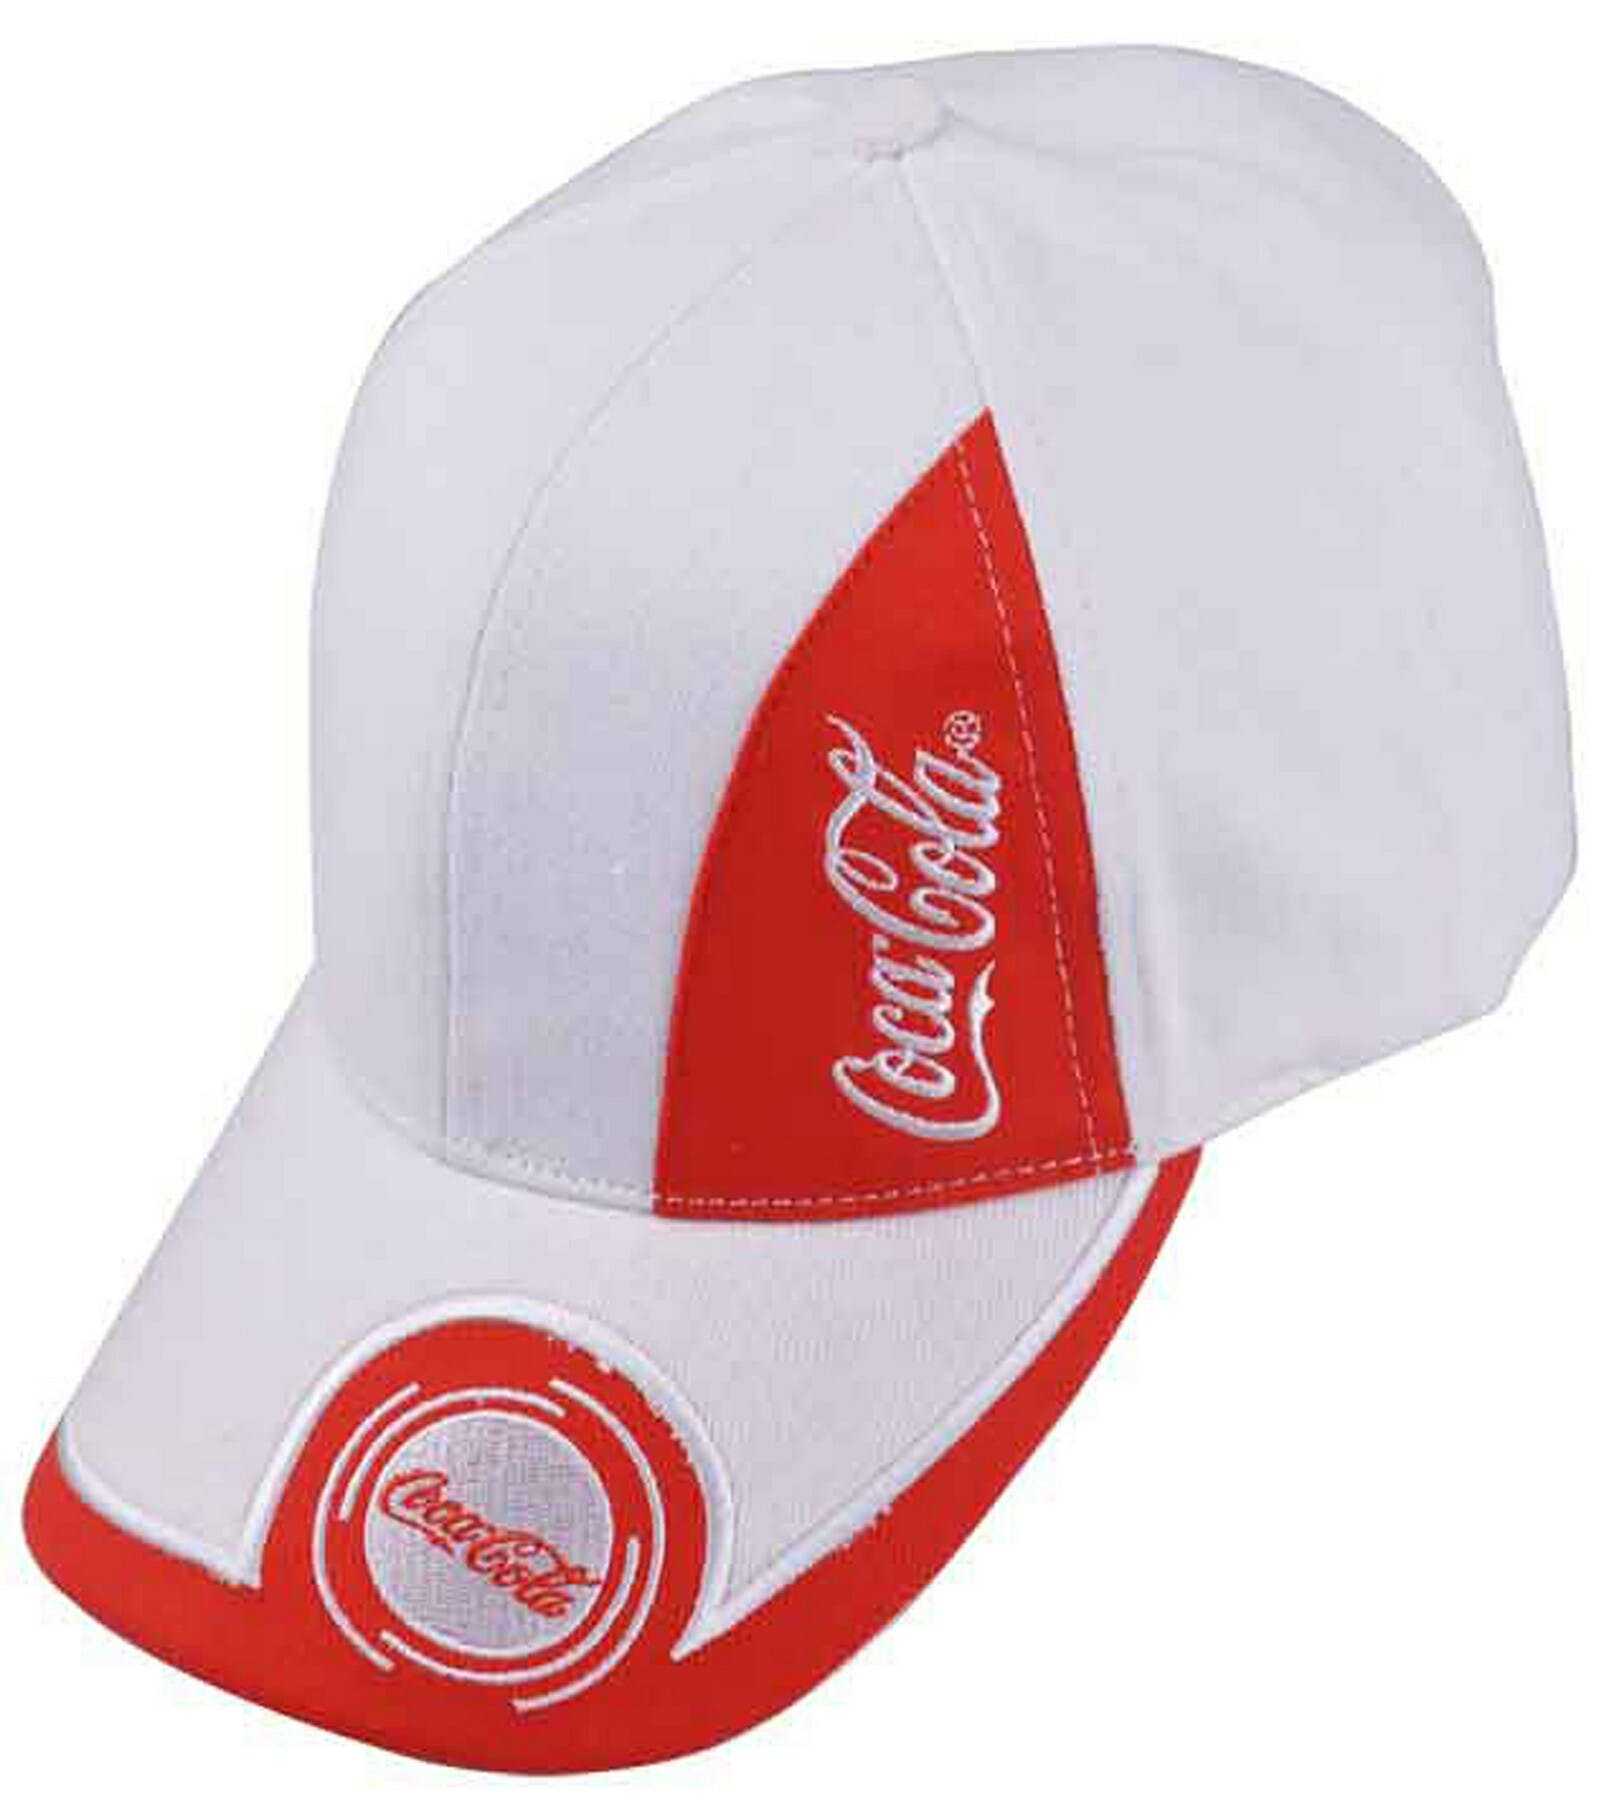 Promotional Cap (Item # BBJQL-JEIAE) Promotional cap sold by InkEasy